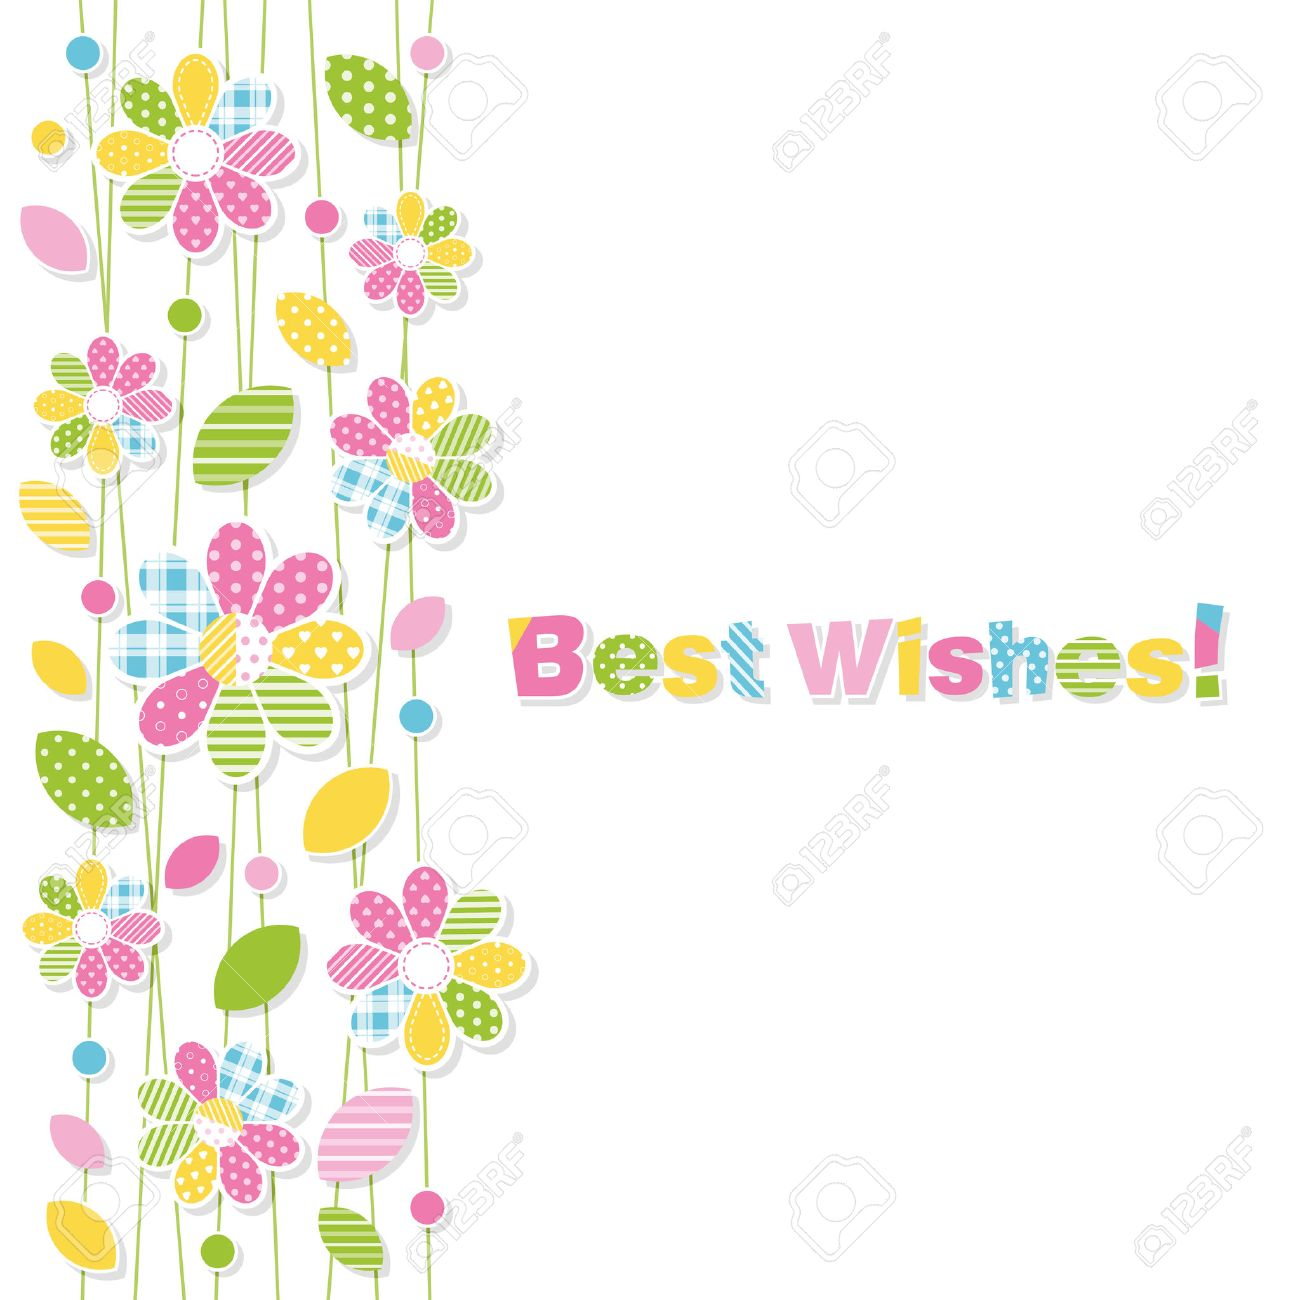 Best wishes flowery greeting card royalty free cliparts vectors best wishes flowery greeting card stock vector 32692175 m4hsunfo